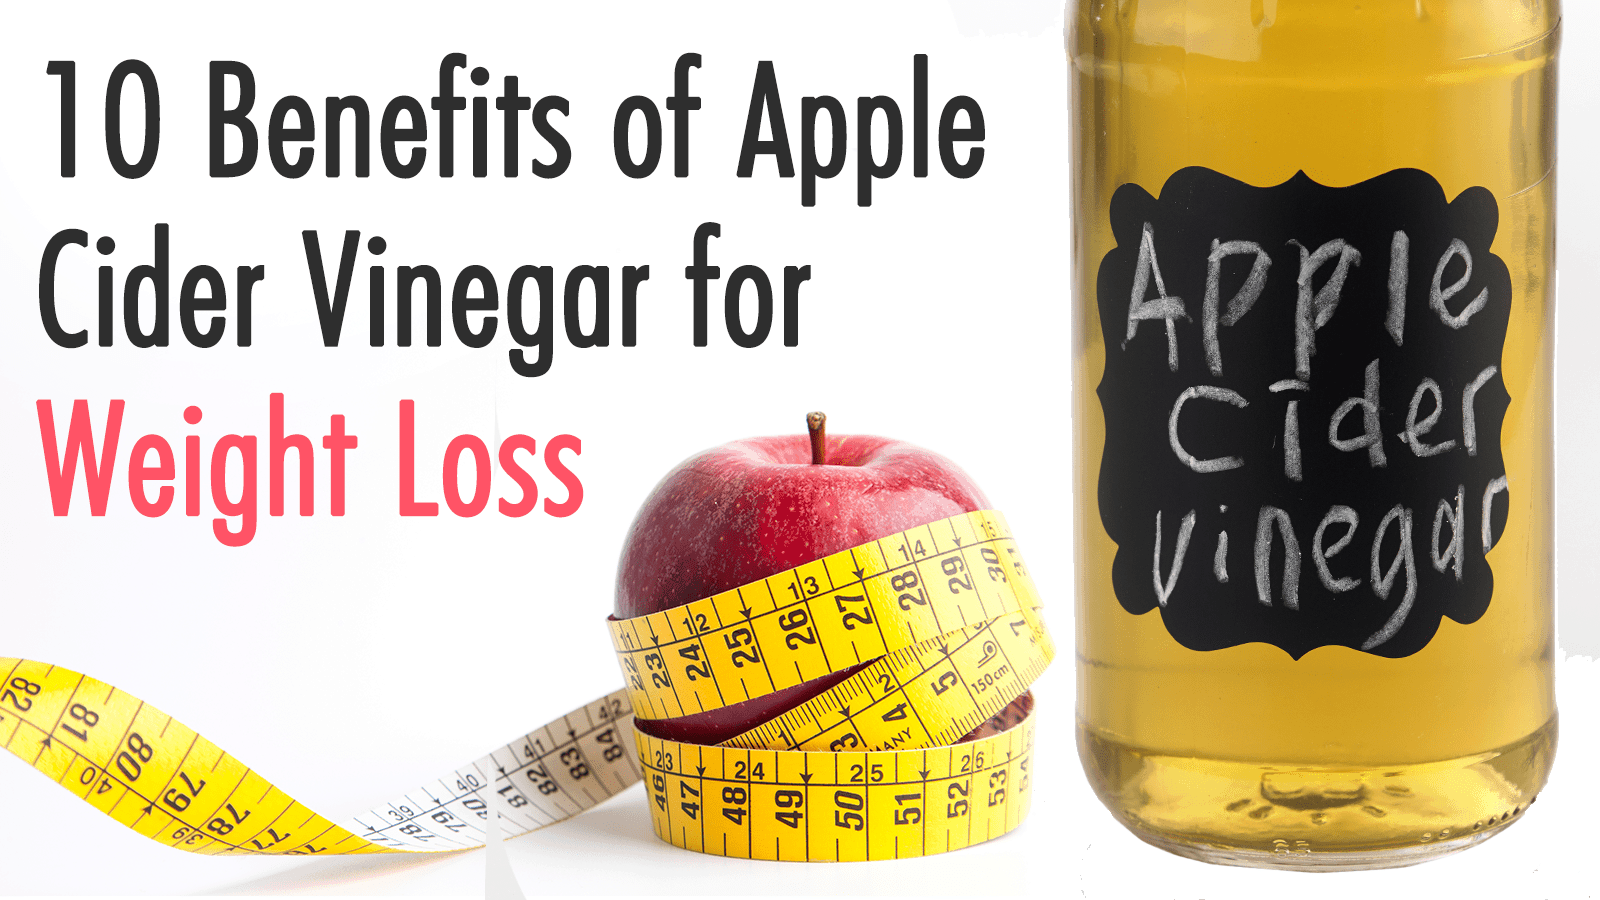 10 Benefits Of Apple Cider Vinegar For Weight Loss